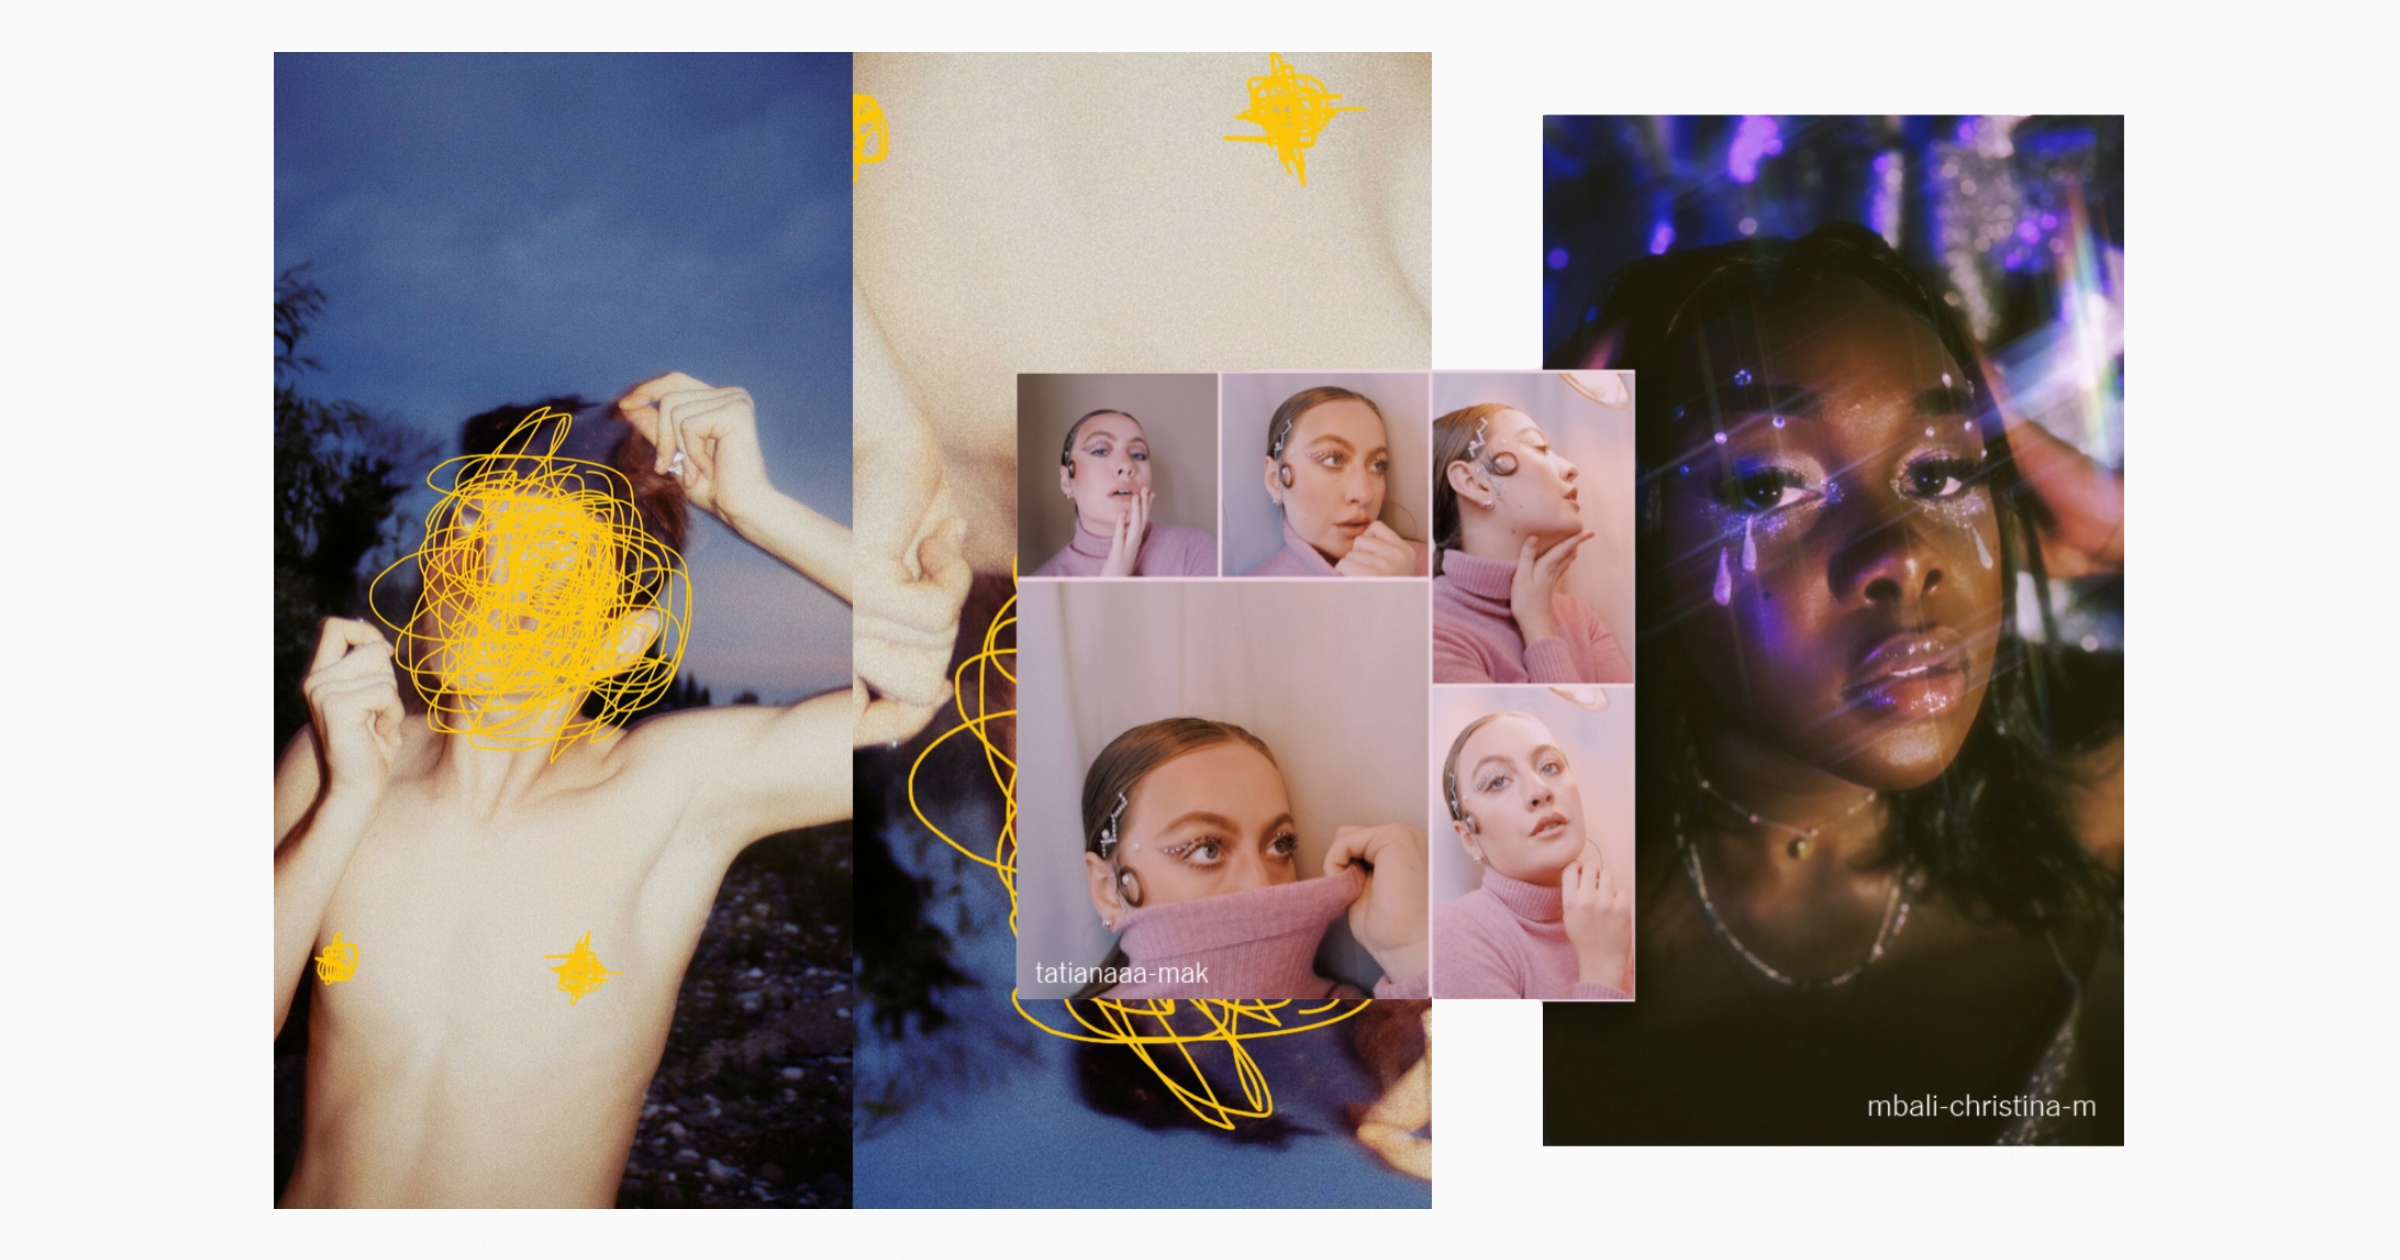 VSCO 2020 year in review photos